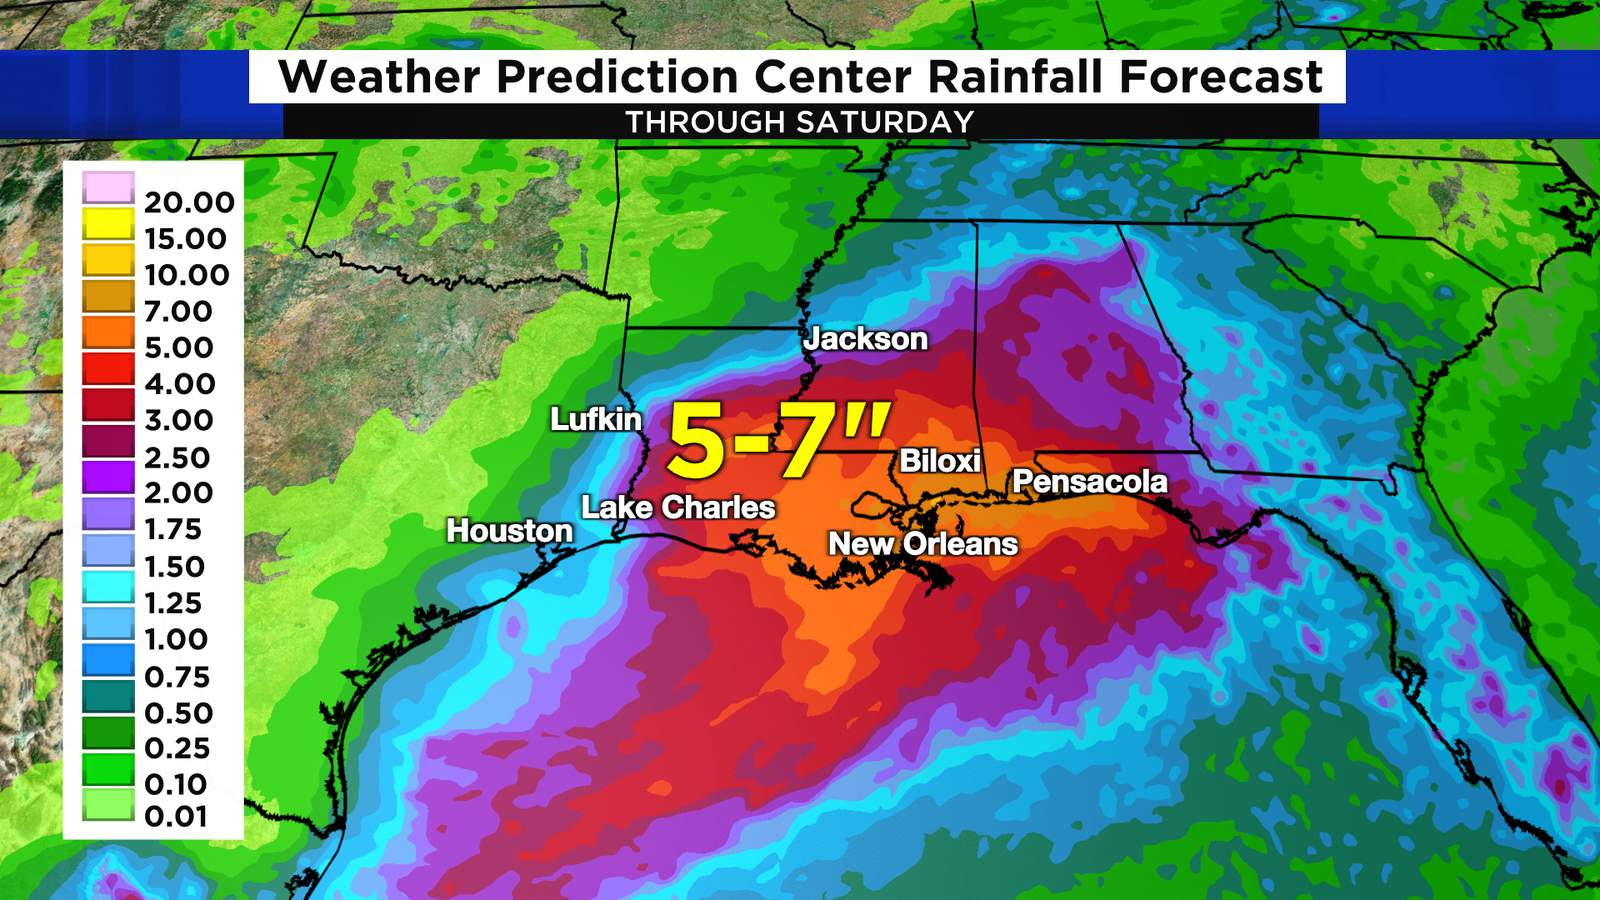 Heavy rain is coming across parts of the Deep South from Tropical Storm Nicholas